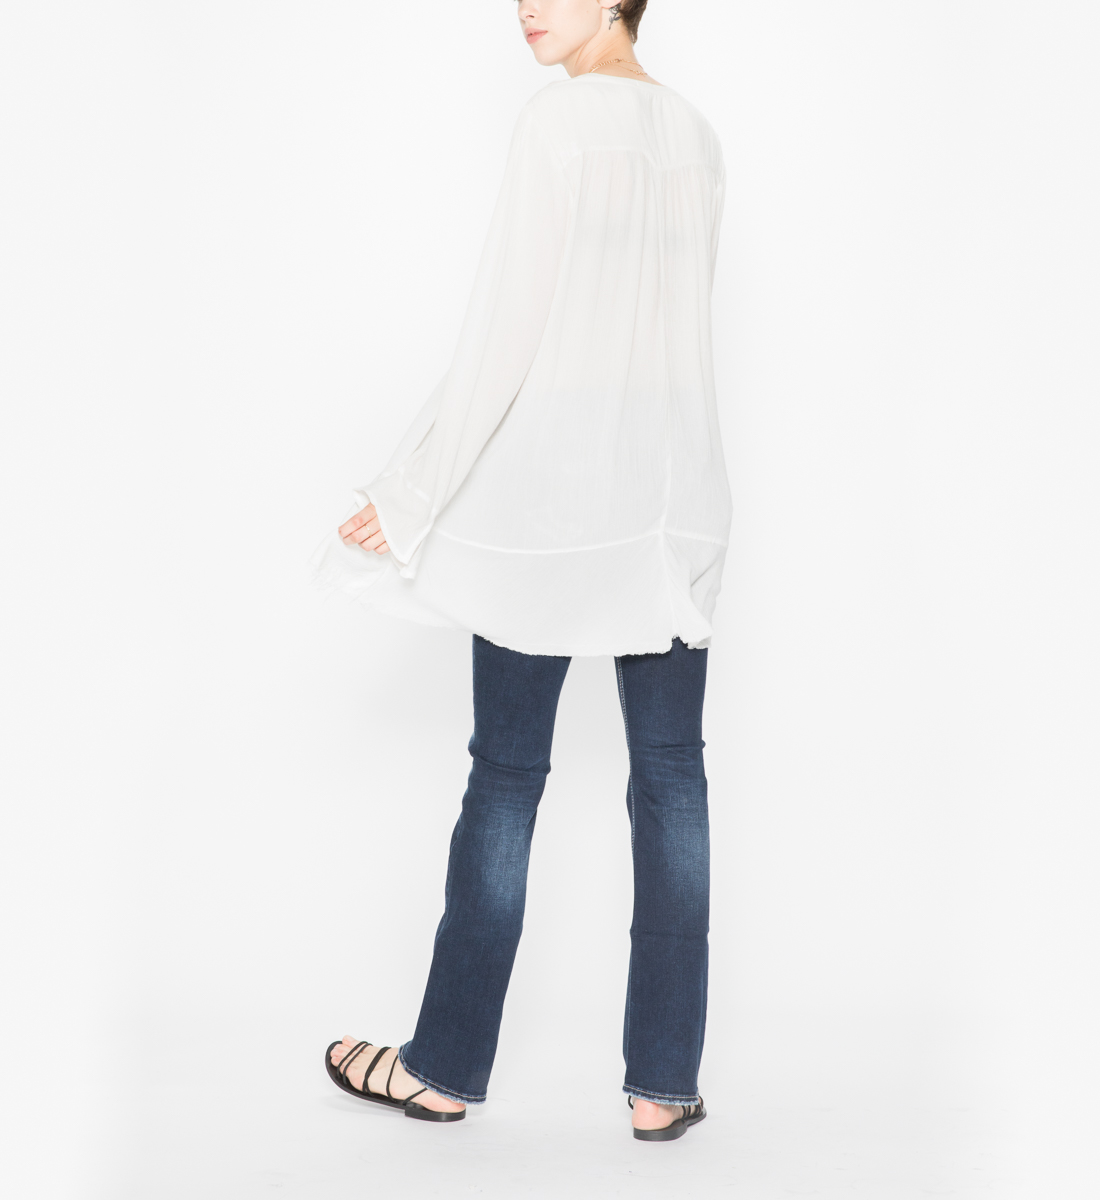 Silver Jeans Co Womens Sophia Flowy Tunic Peasant Top